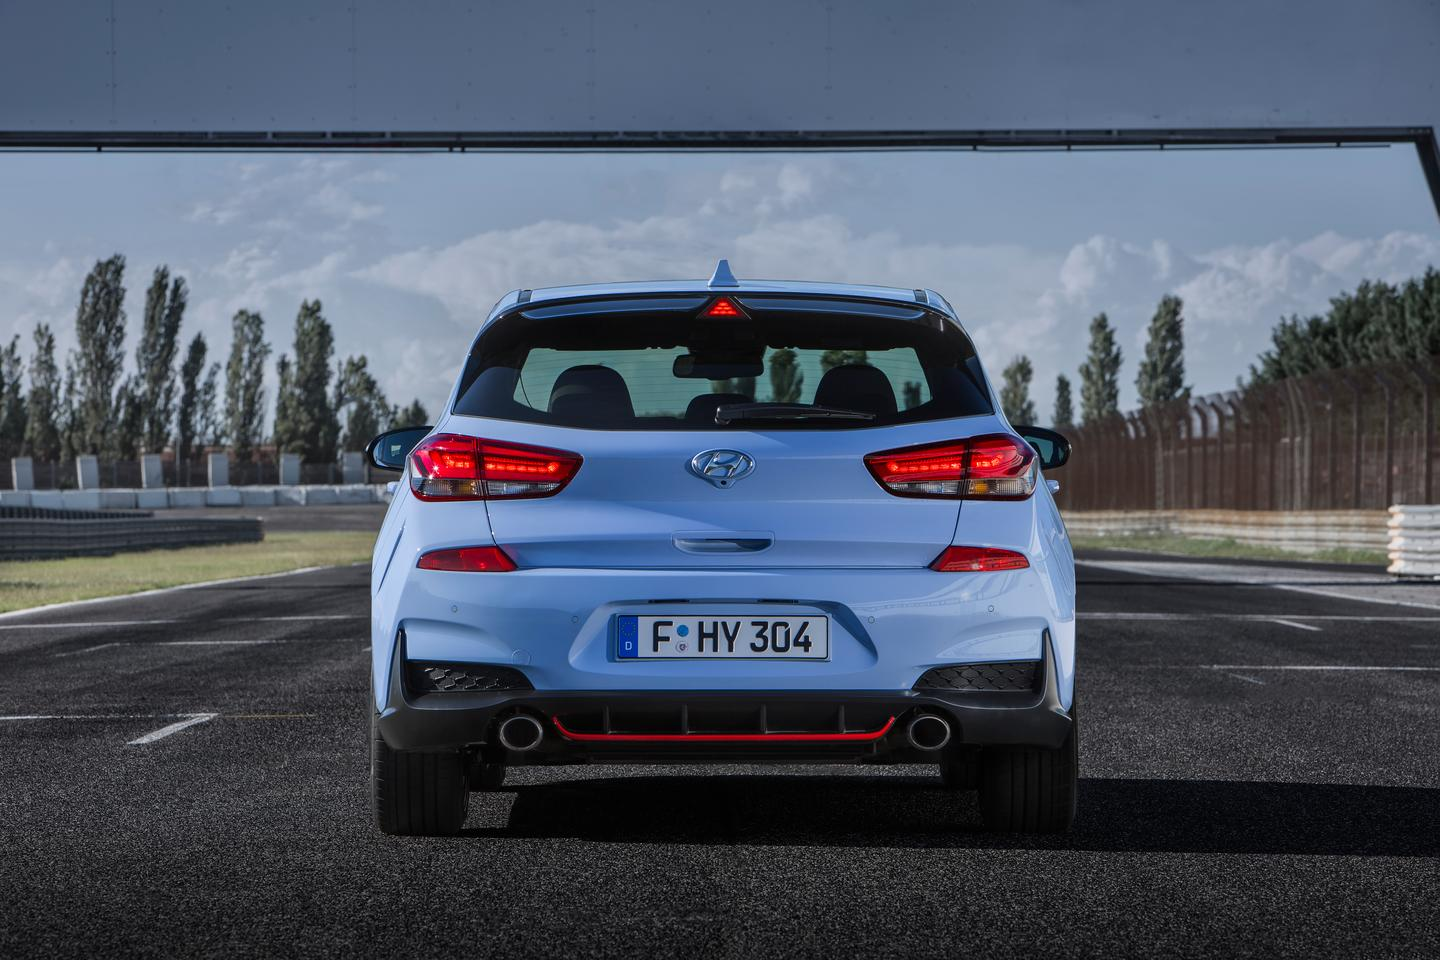 There are some marked exterior differences between the standard i30 and the i30 N model